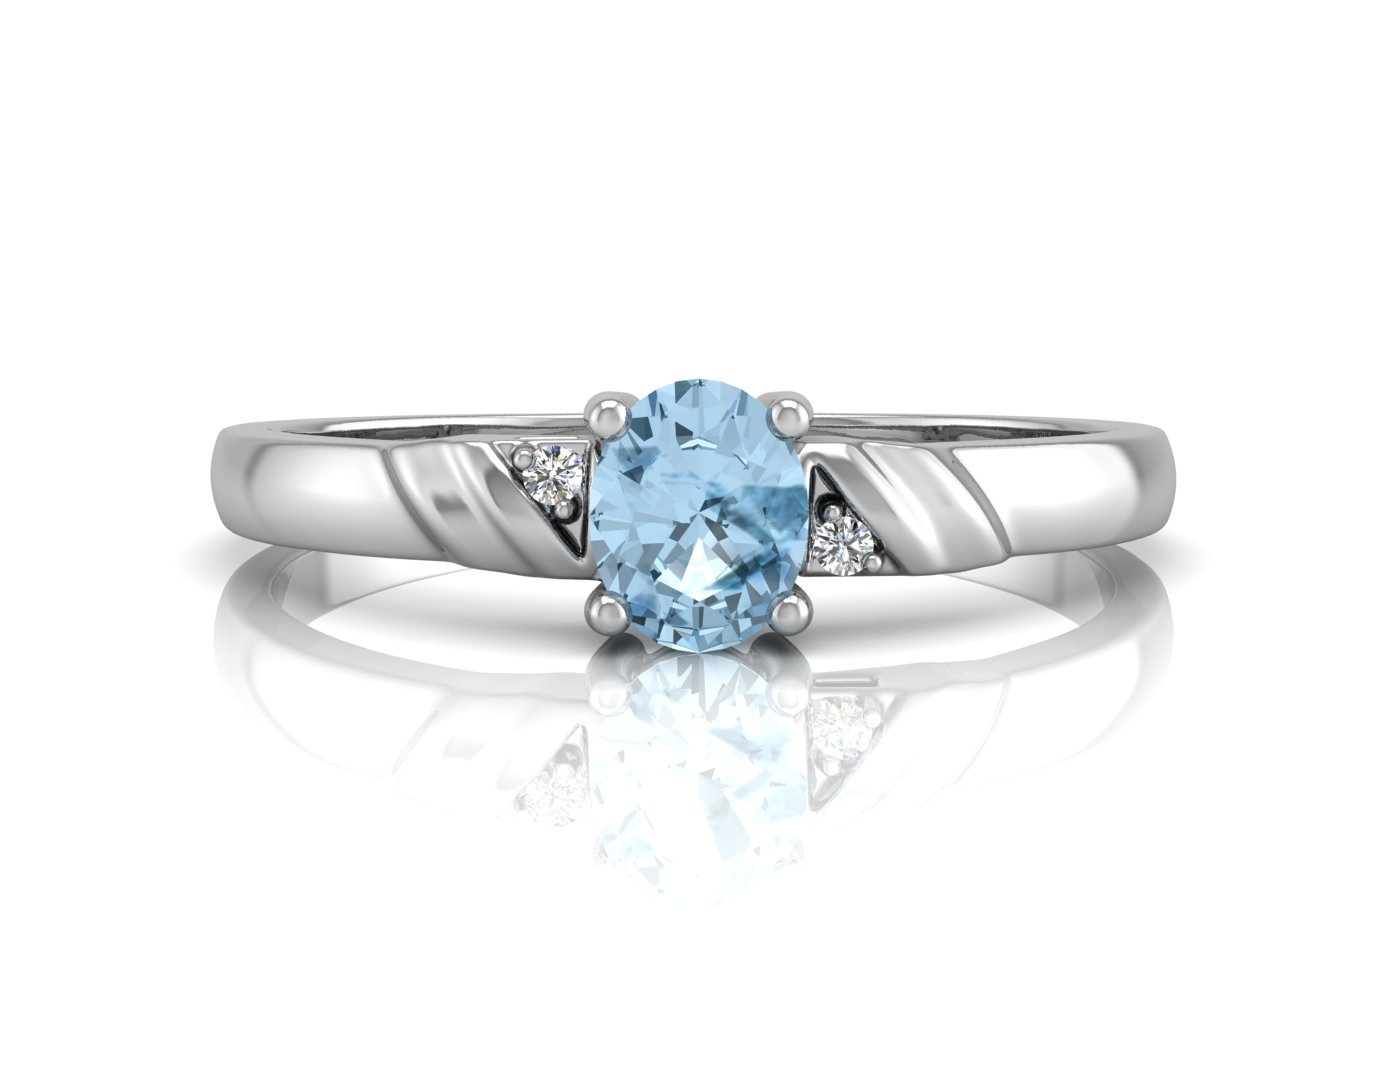 Lot 52 - 9ct White Gold Diamond And Blue Topaz Ring